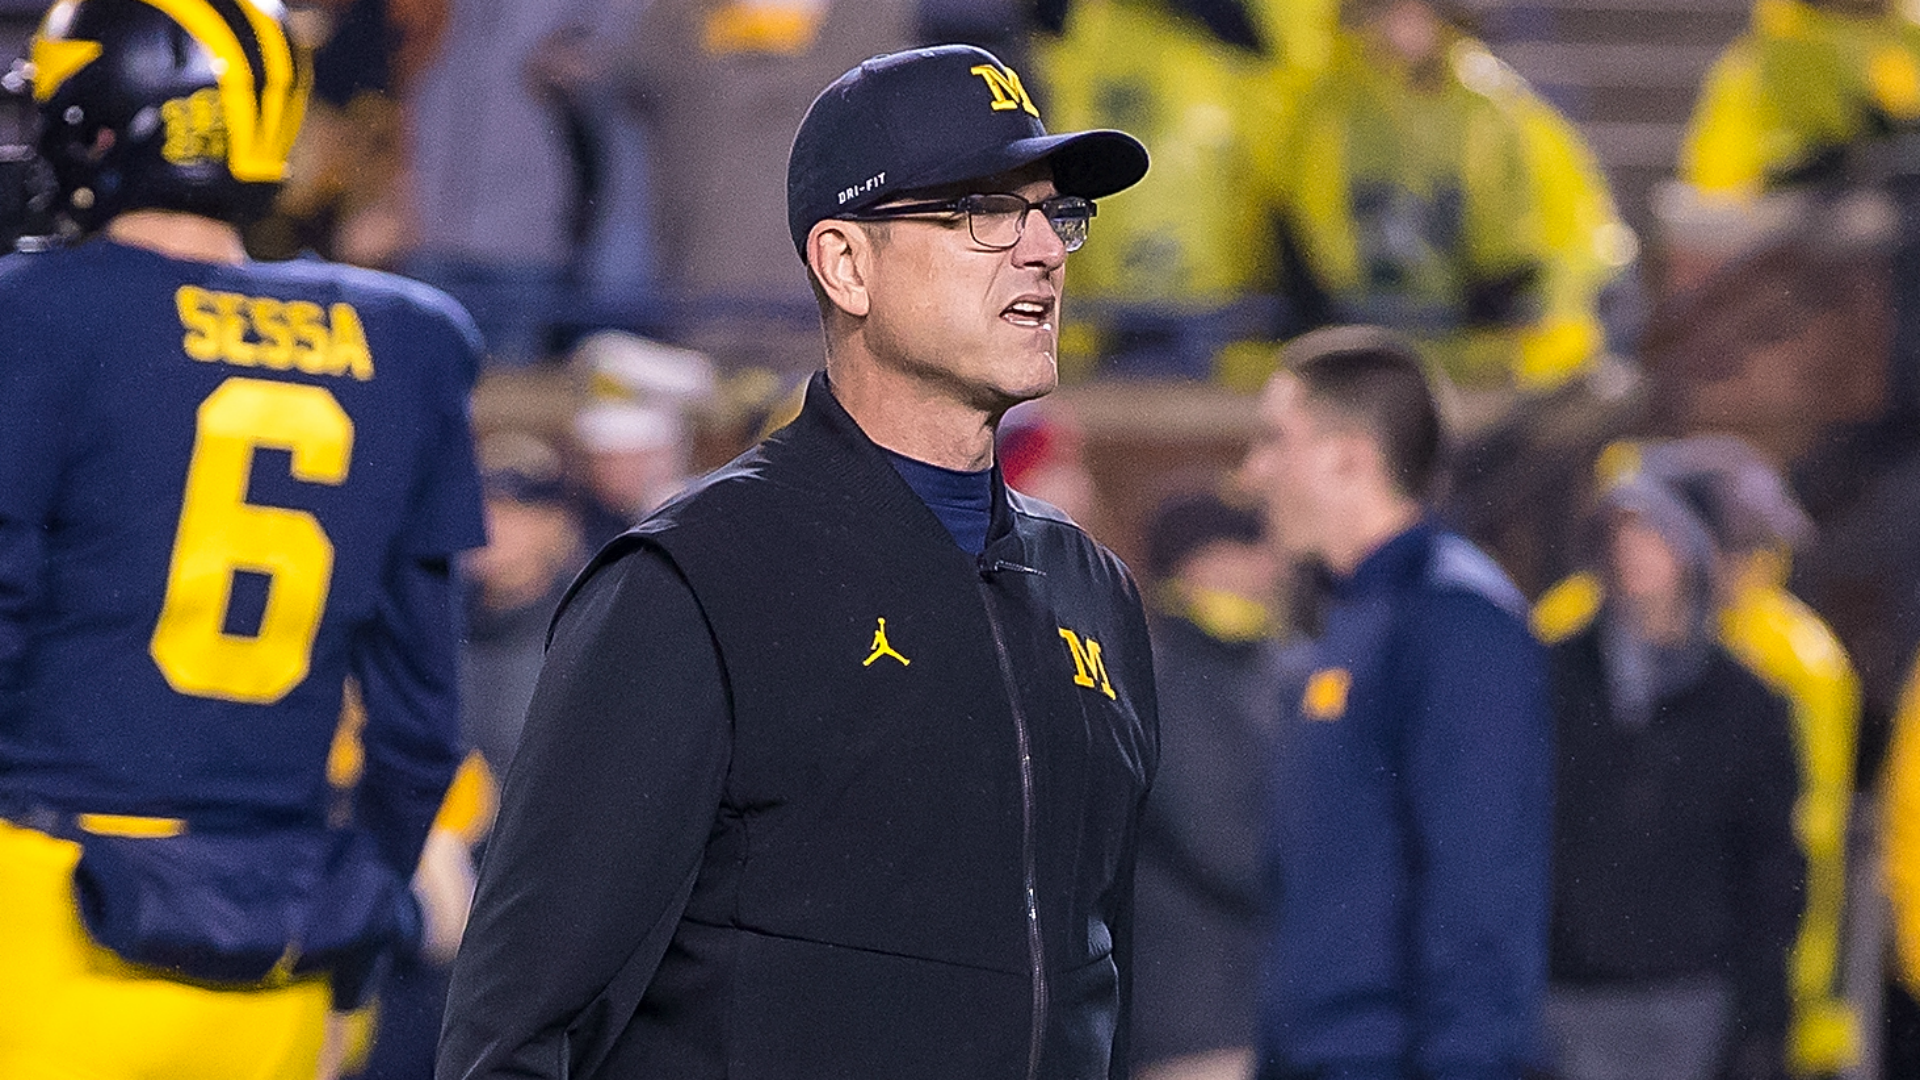 Jim-harbaugh-ftr_mb3mszjbwwfc1gy39le465sxy